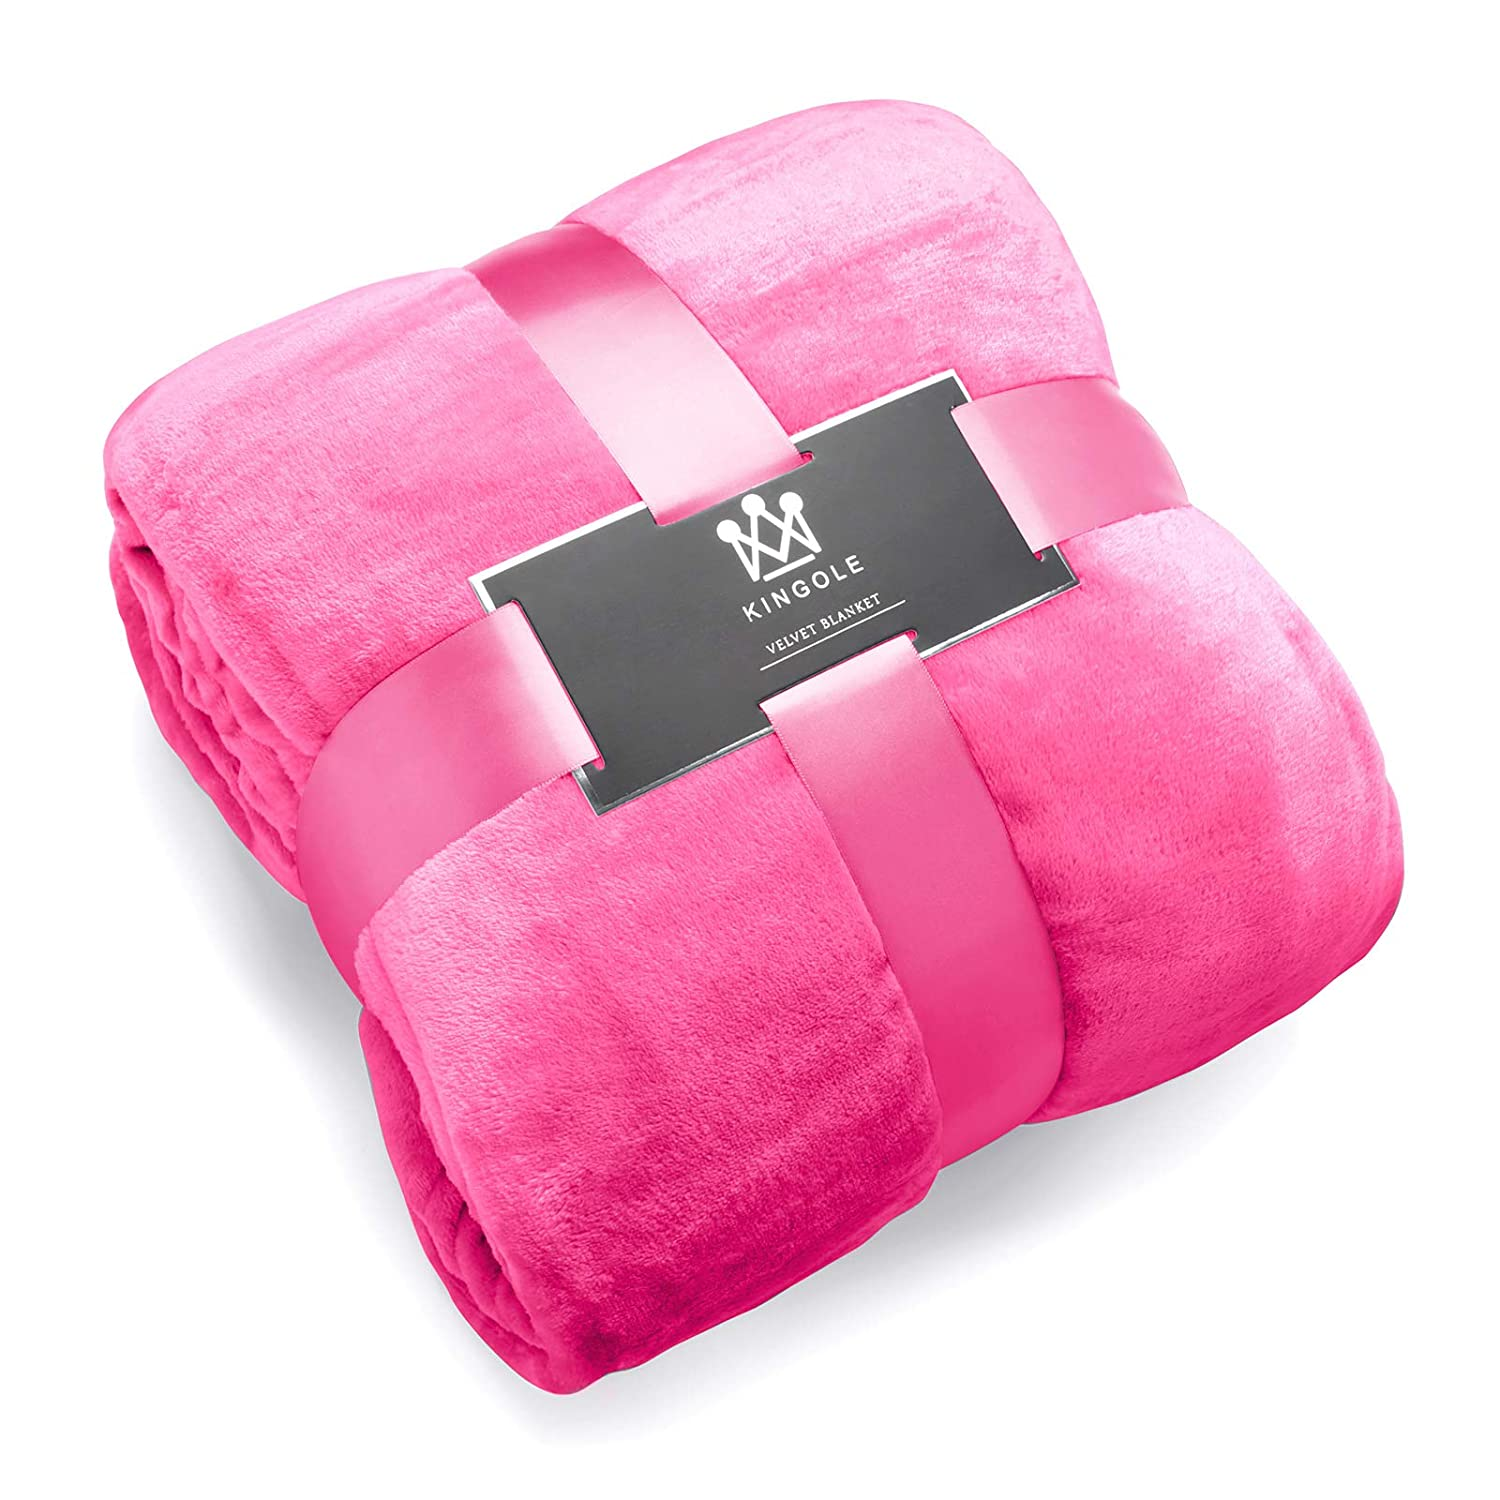 Kingole Flannel Fleece Microfiber Throw Blanket, Luxury Rose Pink Queen Size Lightweight Cozy Couch Bed Super Soft and Warm Plush Solid Color 350GSM (90 x 90 inches)